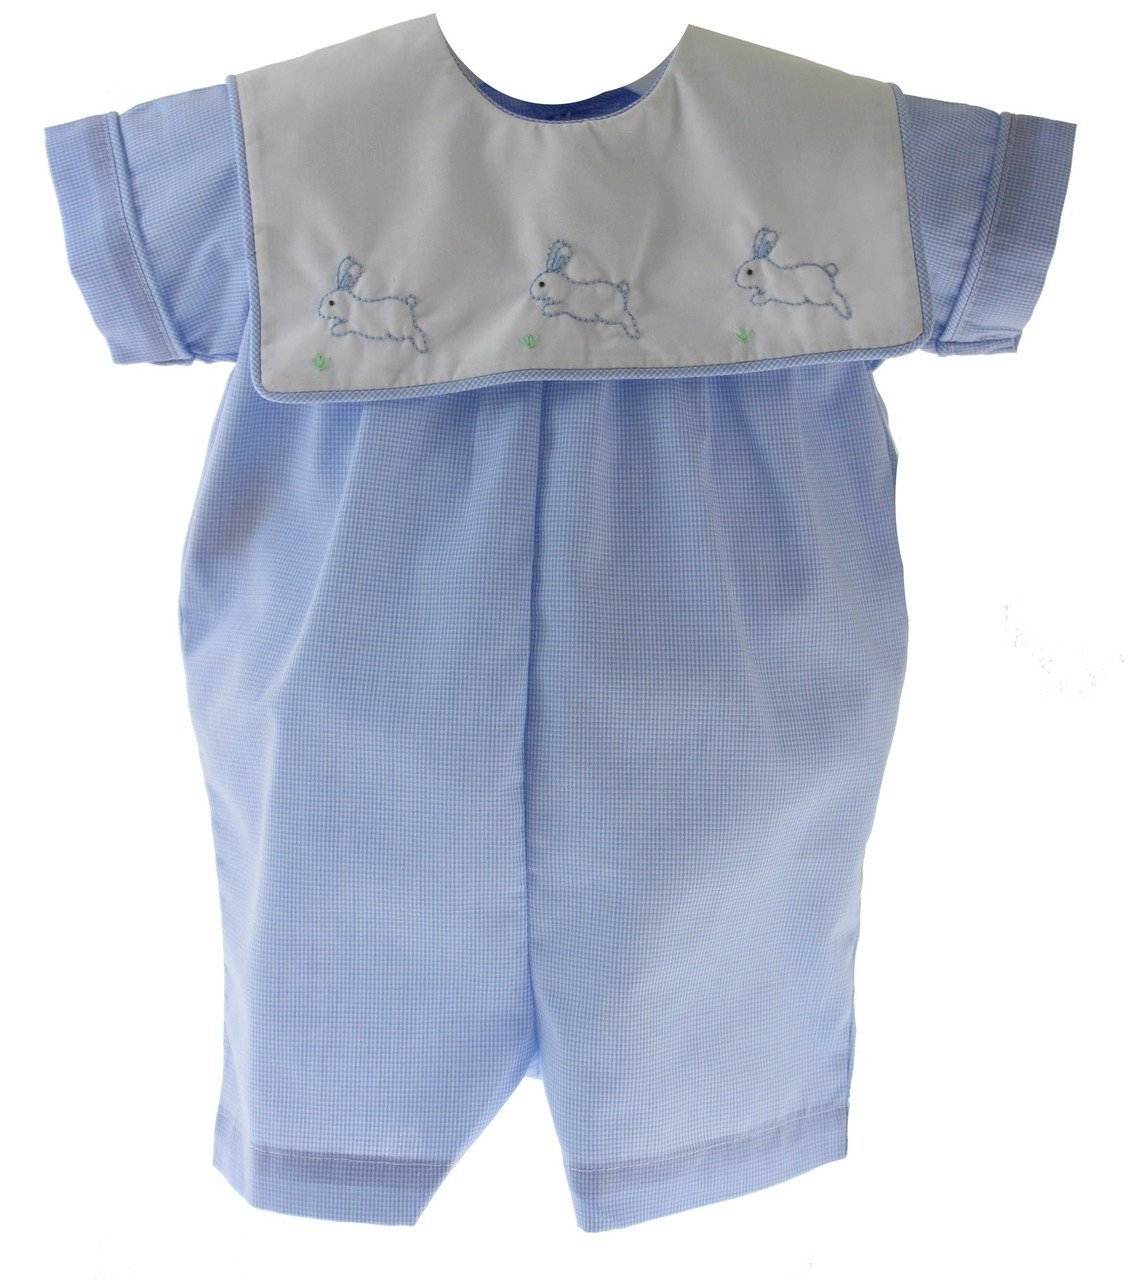 Baby Boys Blue Gingham Easter Romper Outfit Bunny Rabbit Embroidery ... dad3fcc320e8